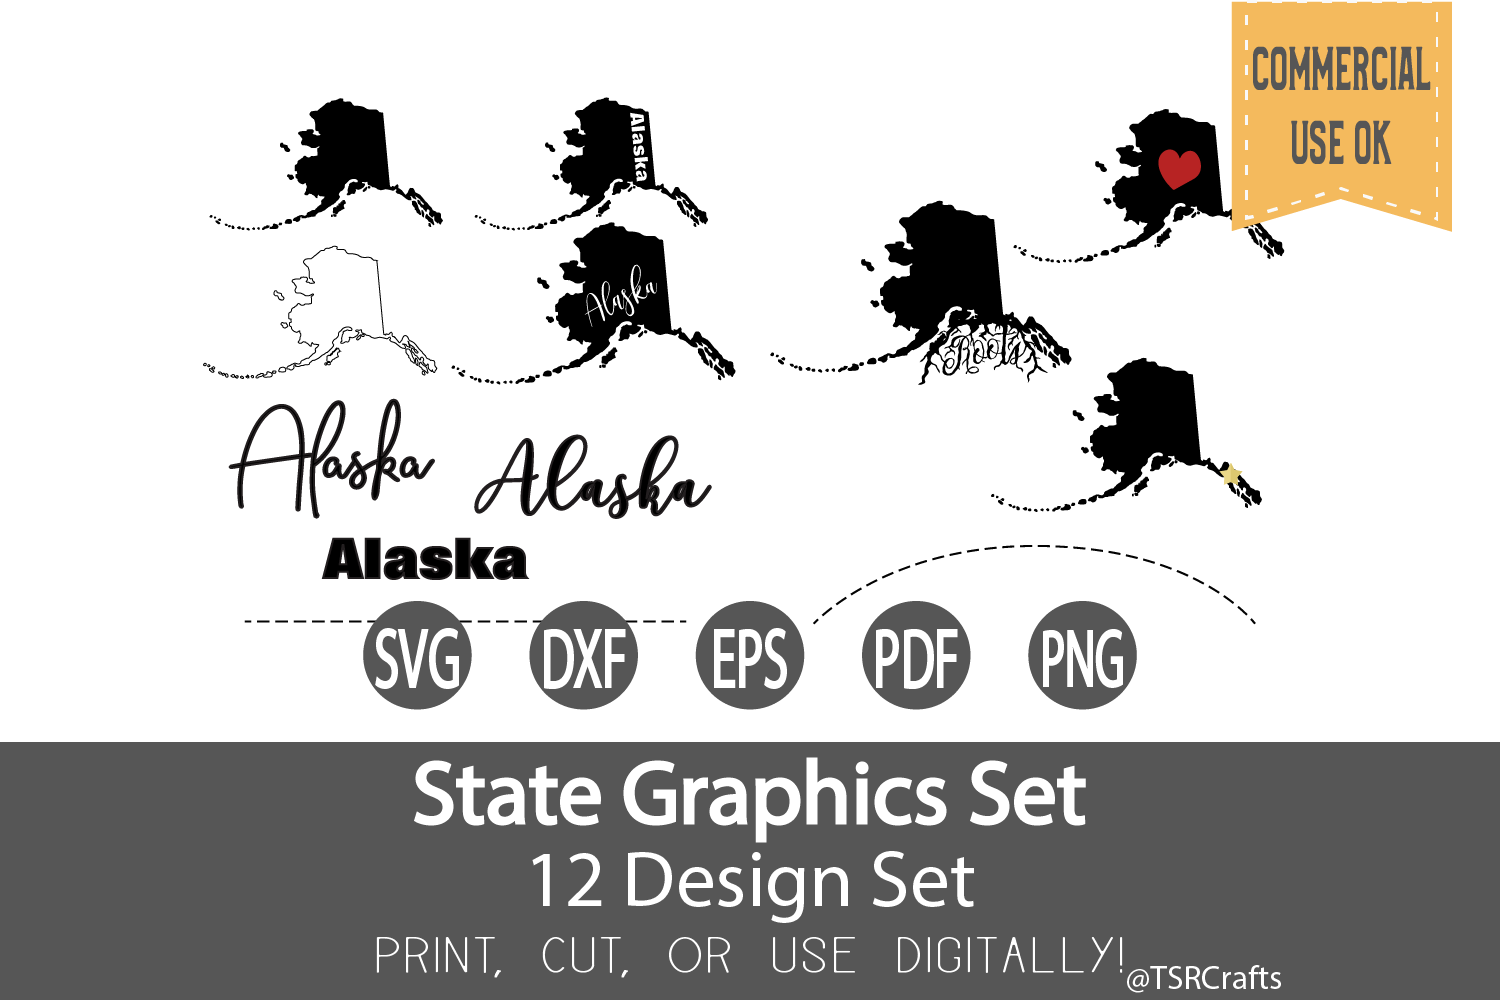 Alaska State Graphics Set - Clip Art and Digital Cut files example image 1